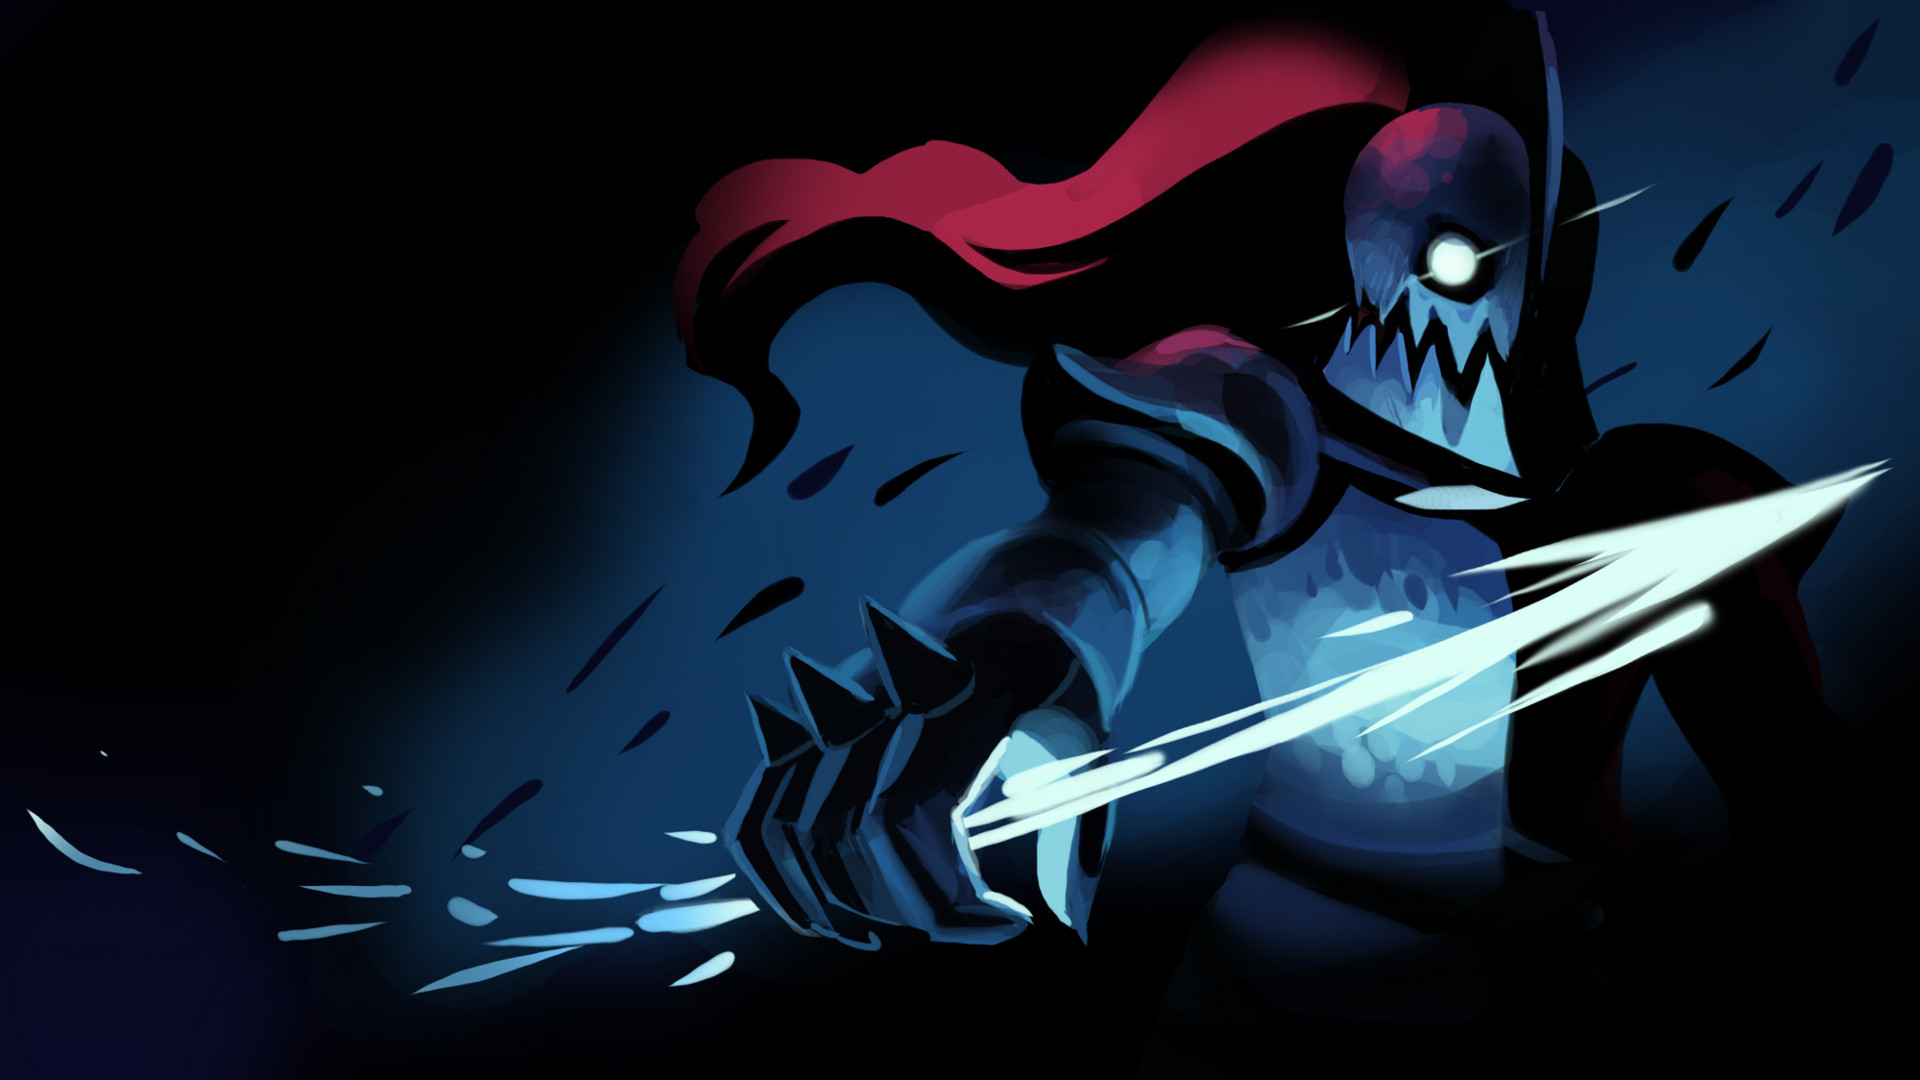 UNDERTALE-The Game images Undyne Wallpaper HD wallpaper and background  photos